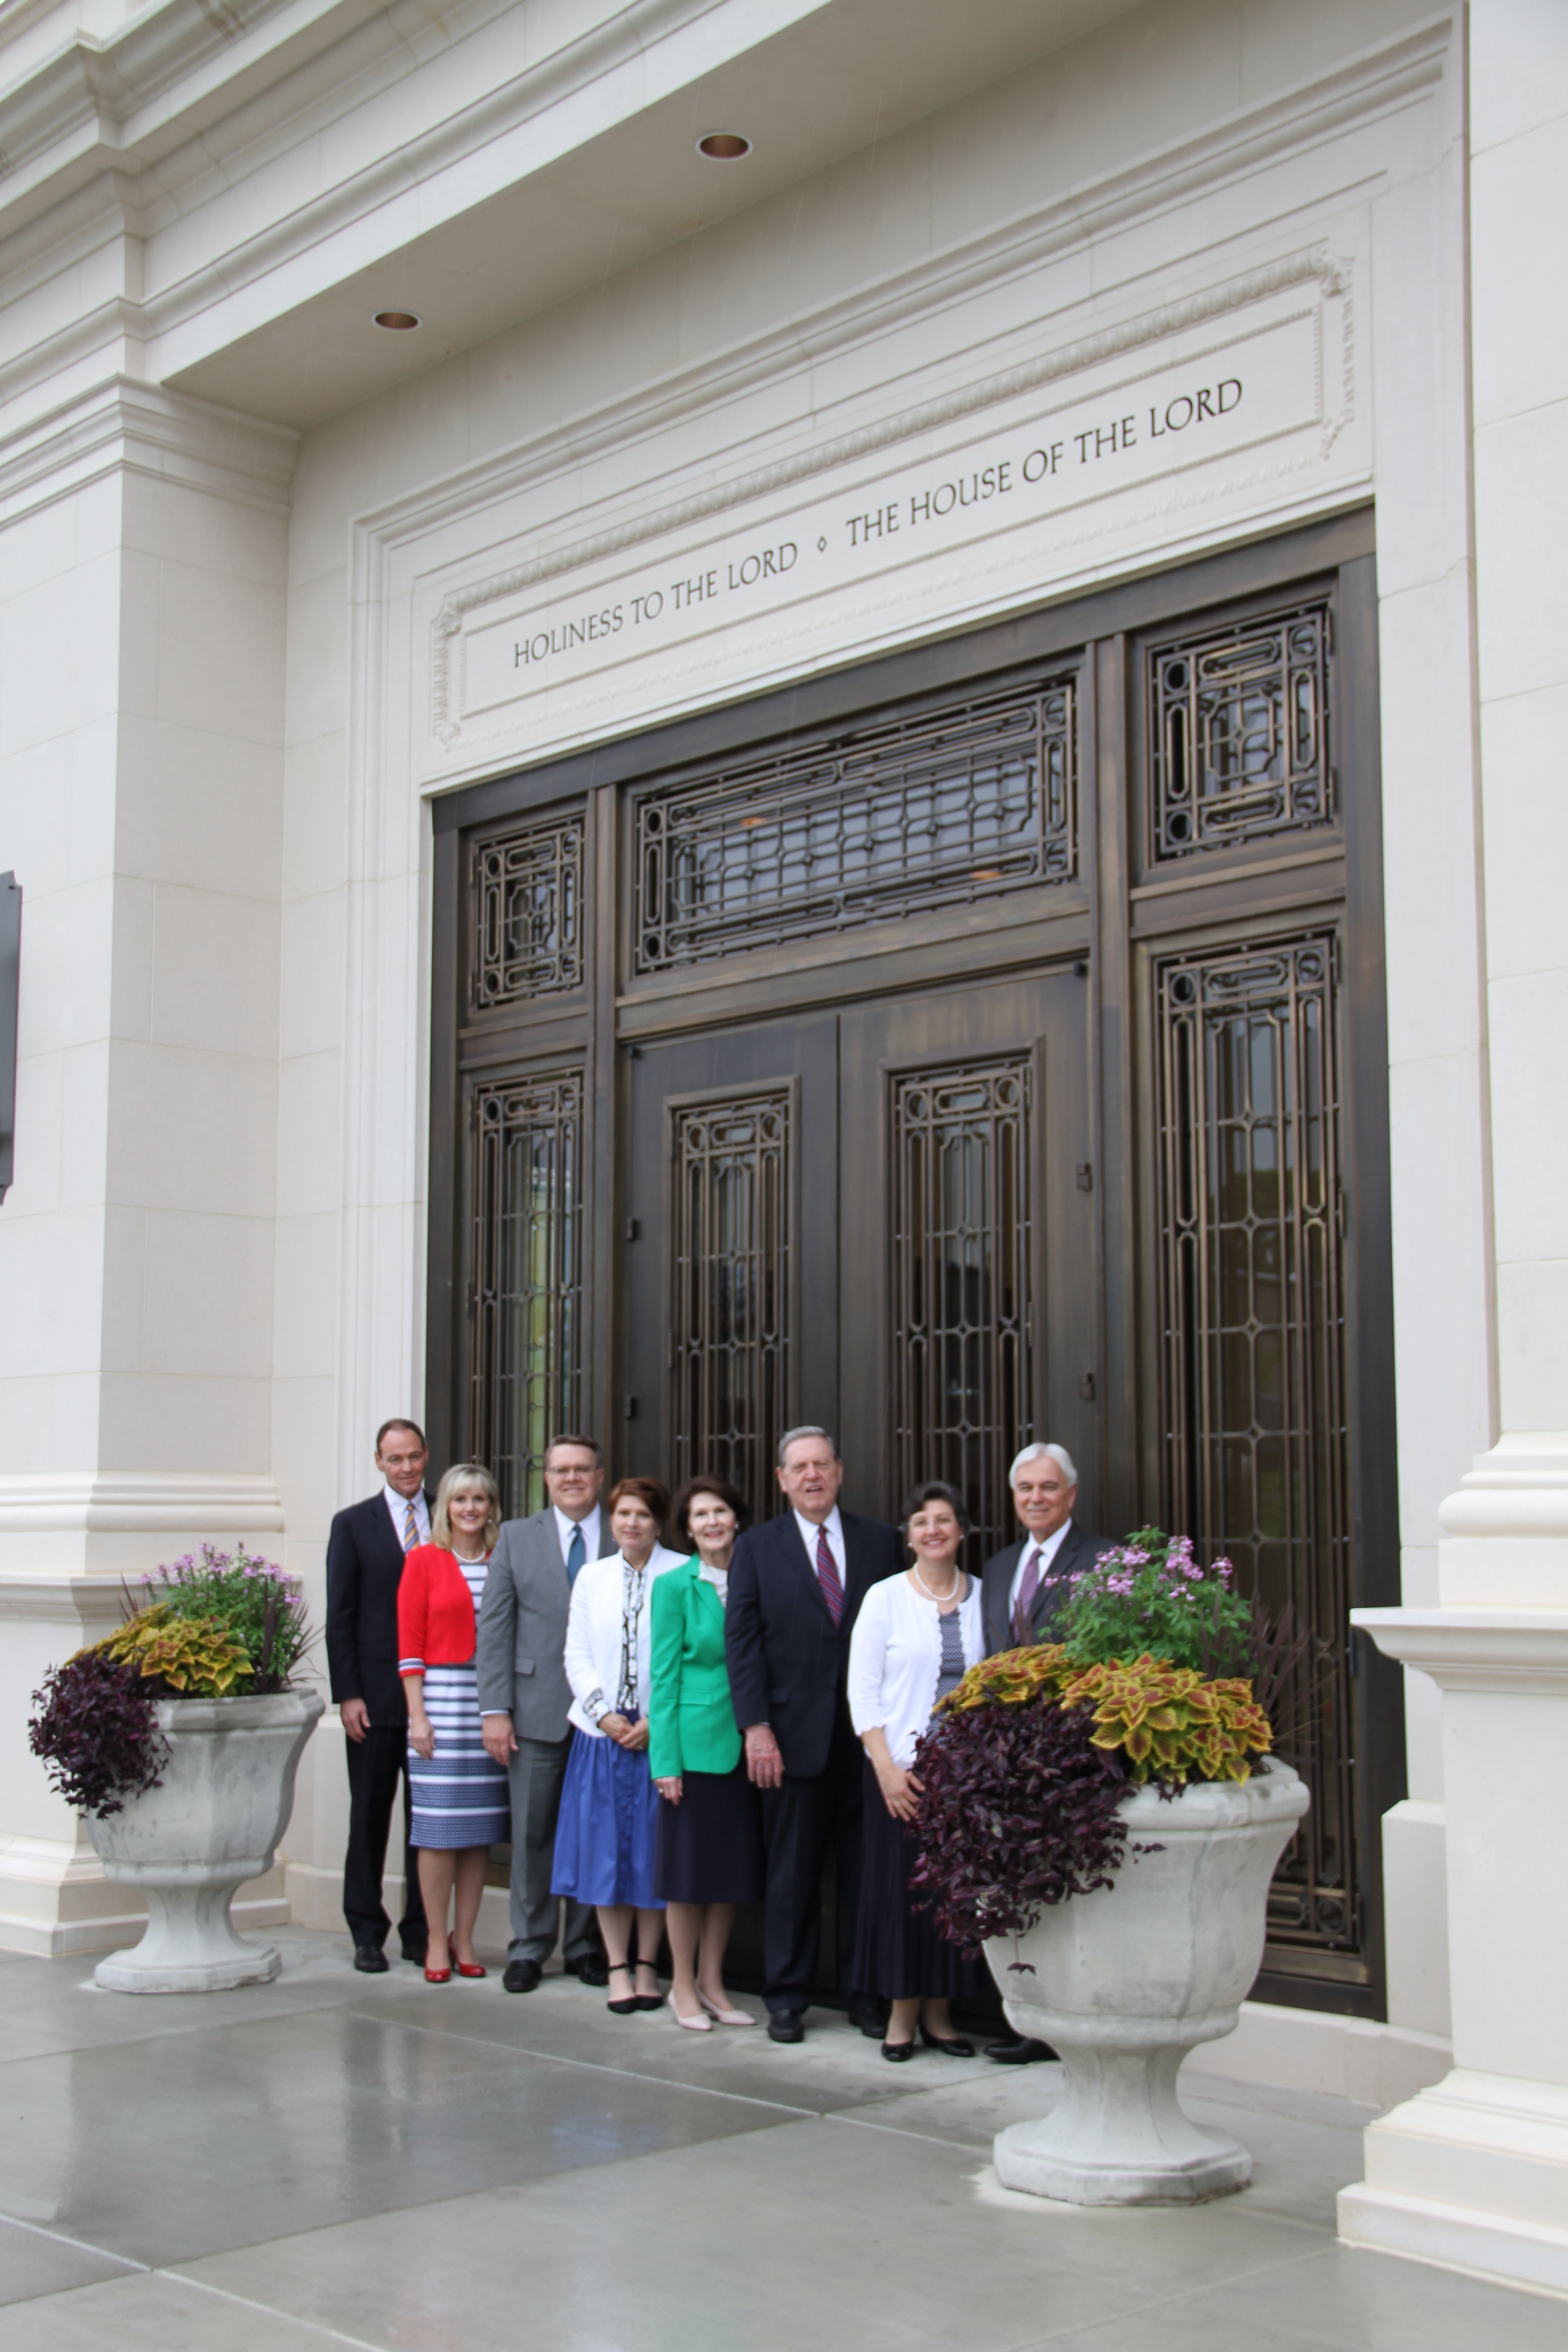 From left, Elder Michael V. Beheshti, Sister Karen Beheshti, Elder Scott D. Whiting, Sister Jeri Whiting, Sister Patricia Holland, Elder Jeffrey R. Holland, Sister Margareth Costa and Elder Claudio R. M. Costa pose for photos outside the Memphis Tennessee Temple after touring the recently renovated temple on May 4, 2019.